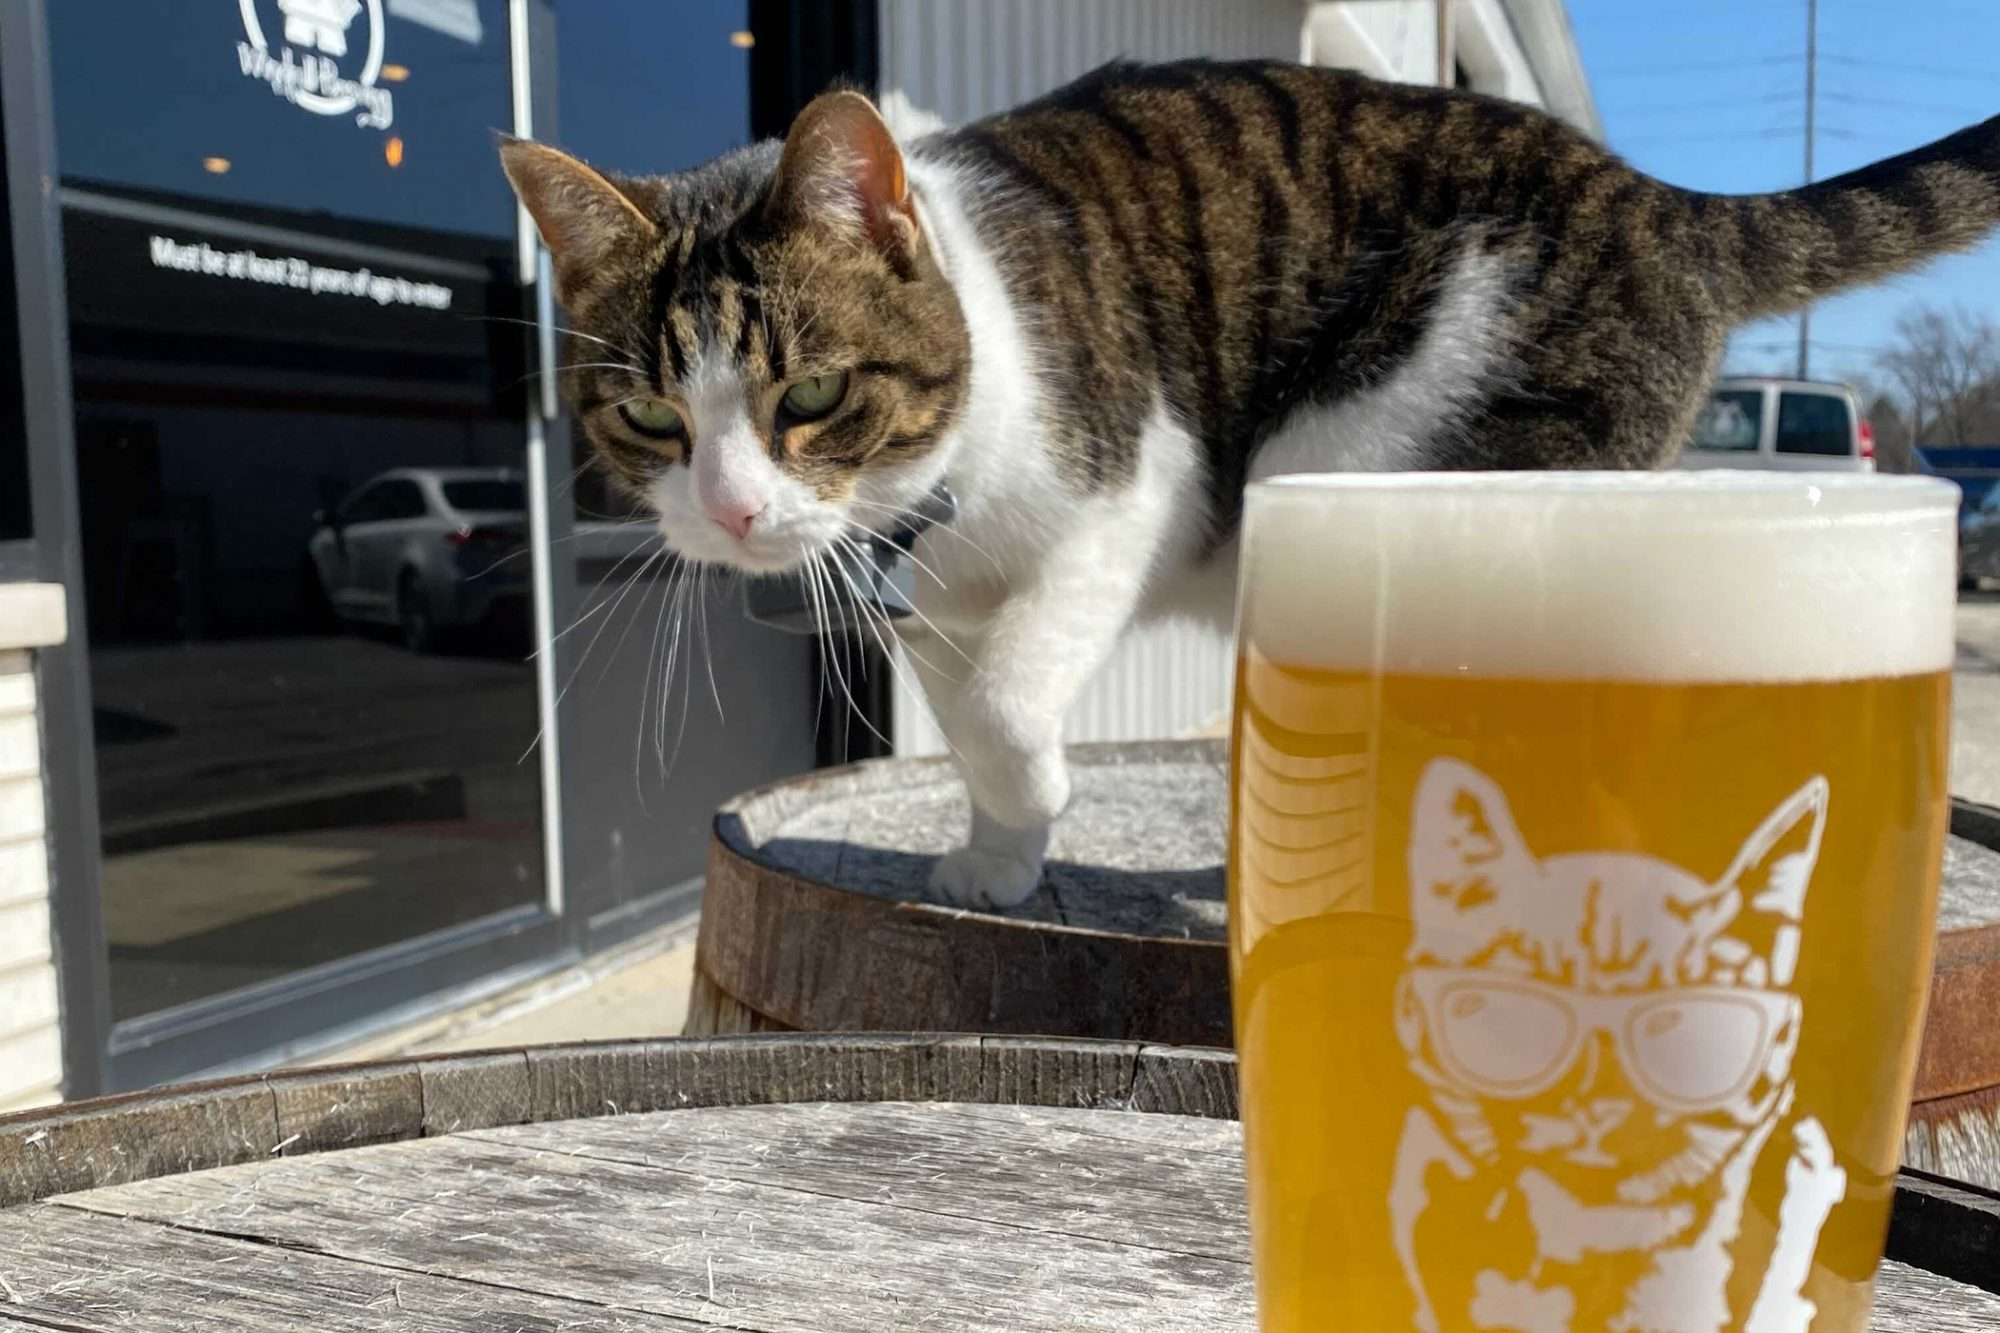 Luther, the cat, posing with a glass of brew